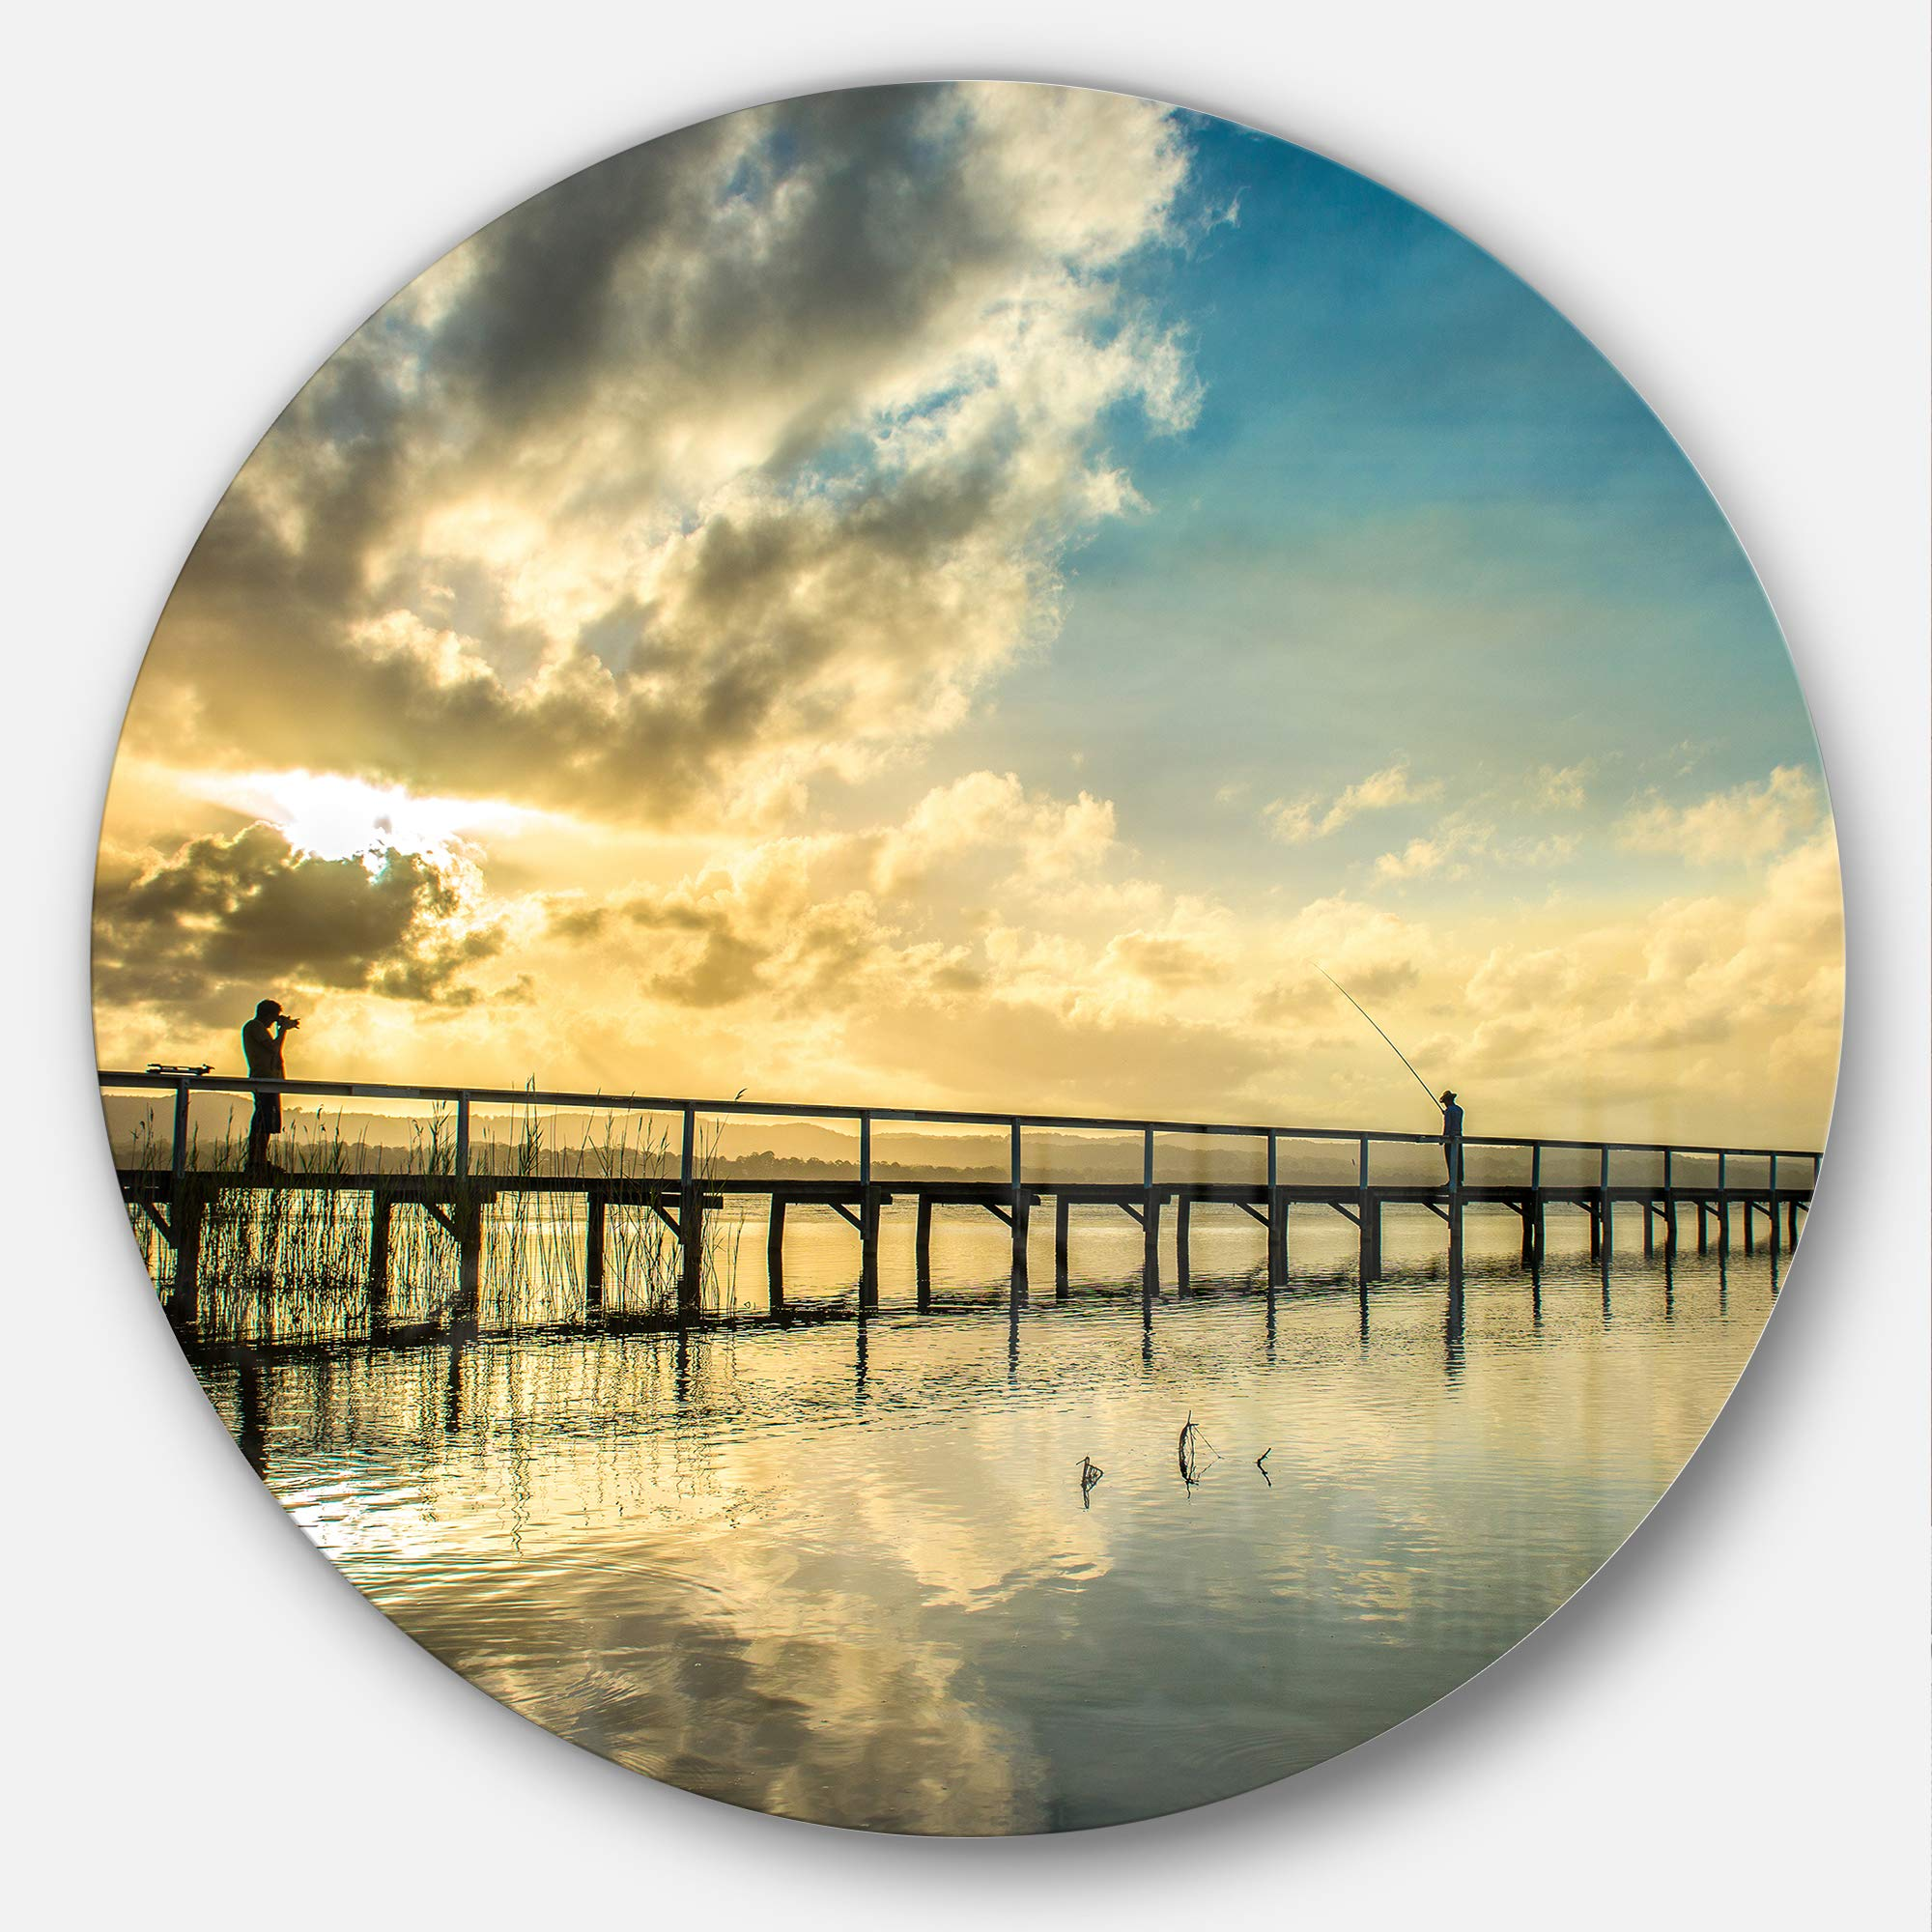 Designart Mt10218 C23 Long Jetty Foreshore Reserve With Clouds Sea Bridge Circle Wall Art Disc 23 X 23 Blue Buy Online At Best Price In Uae Amazon Ae